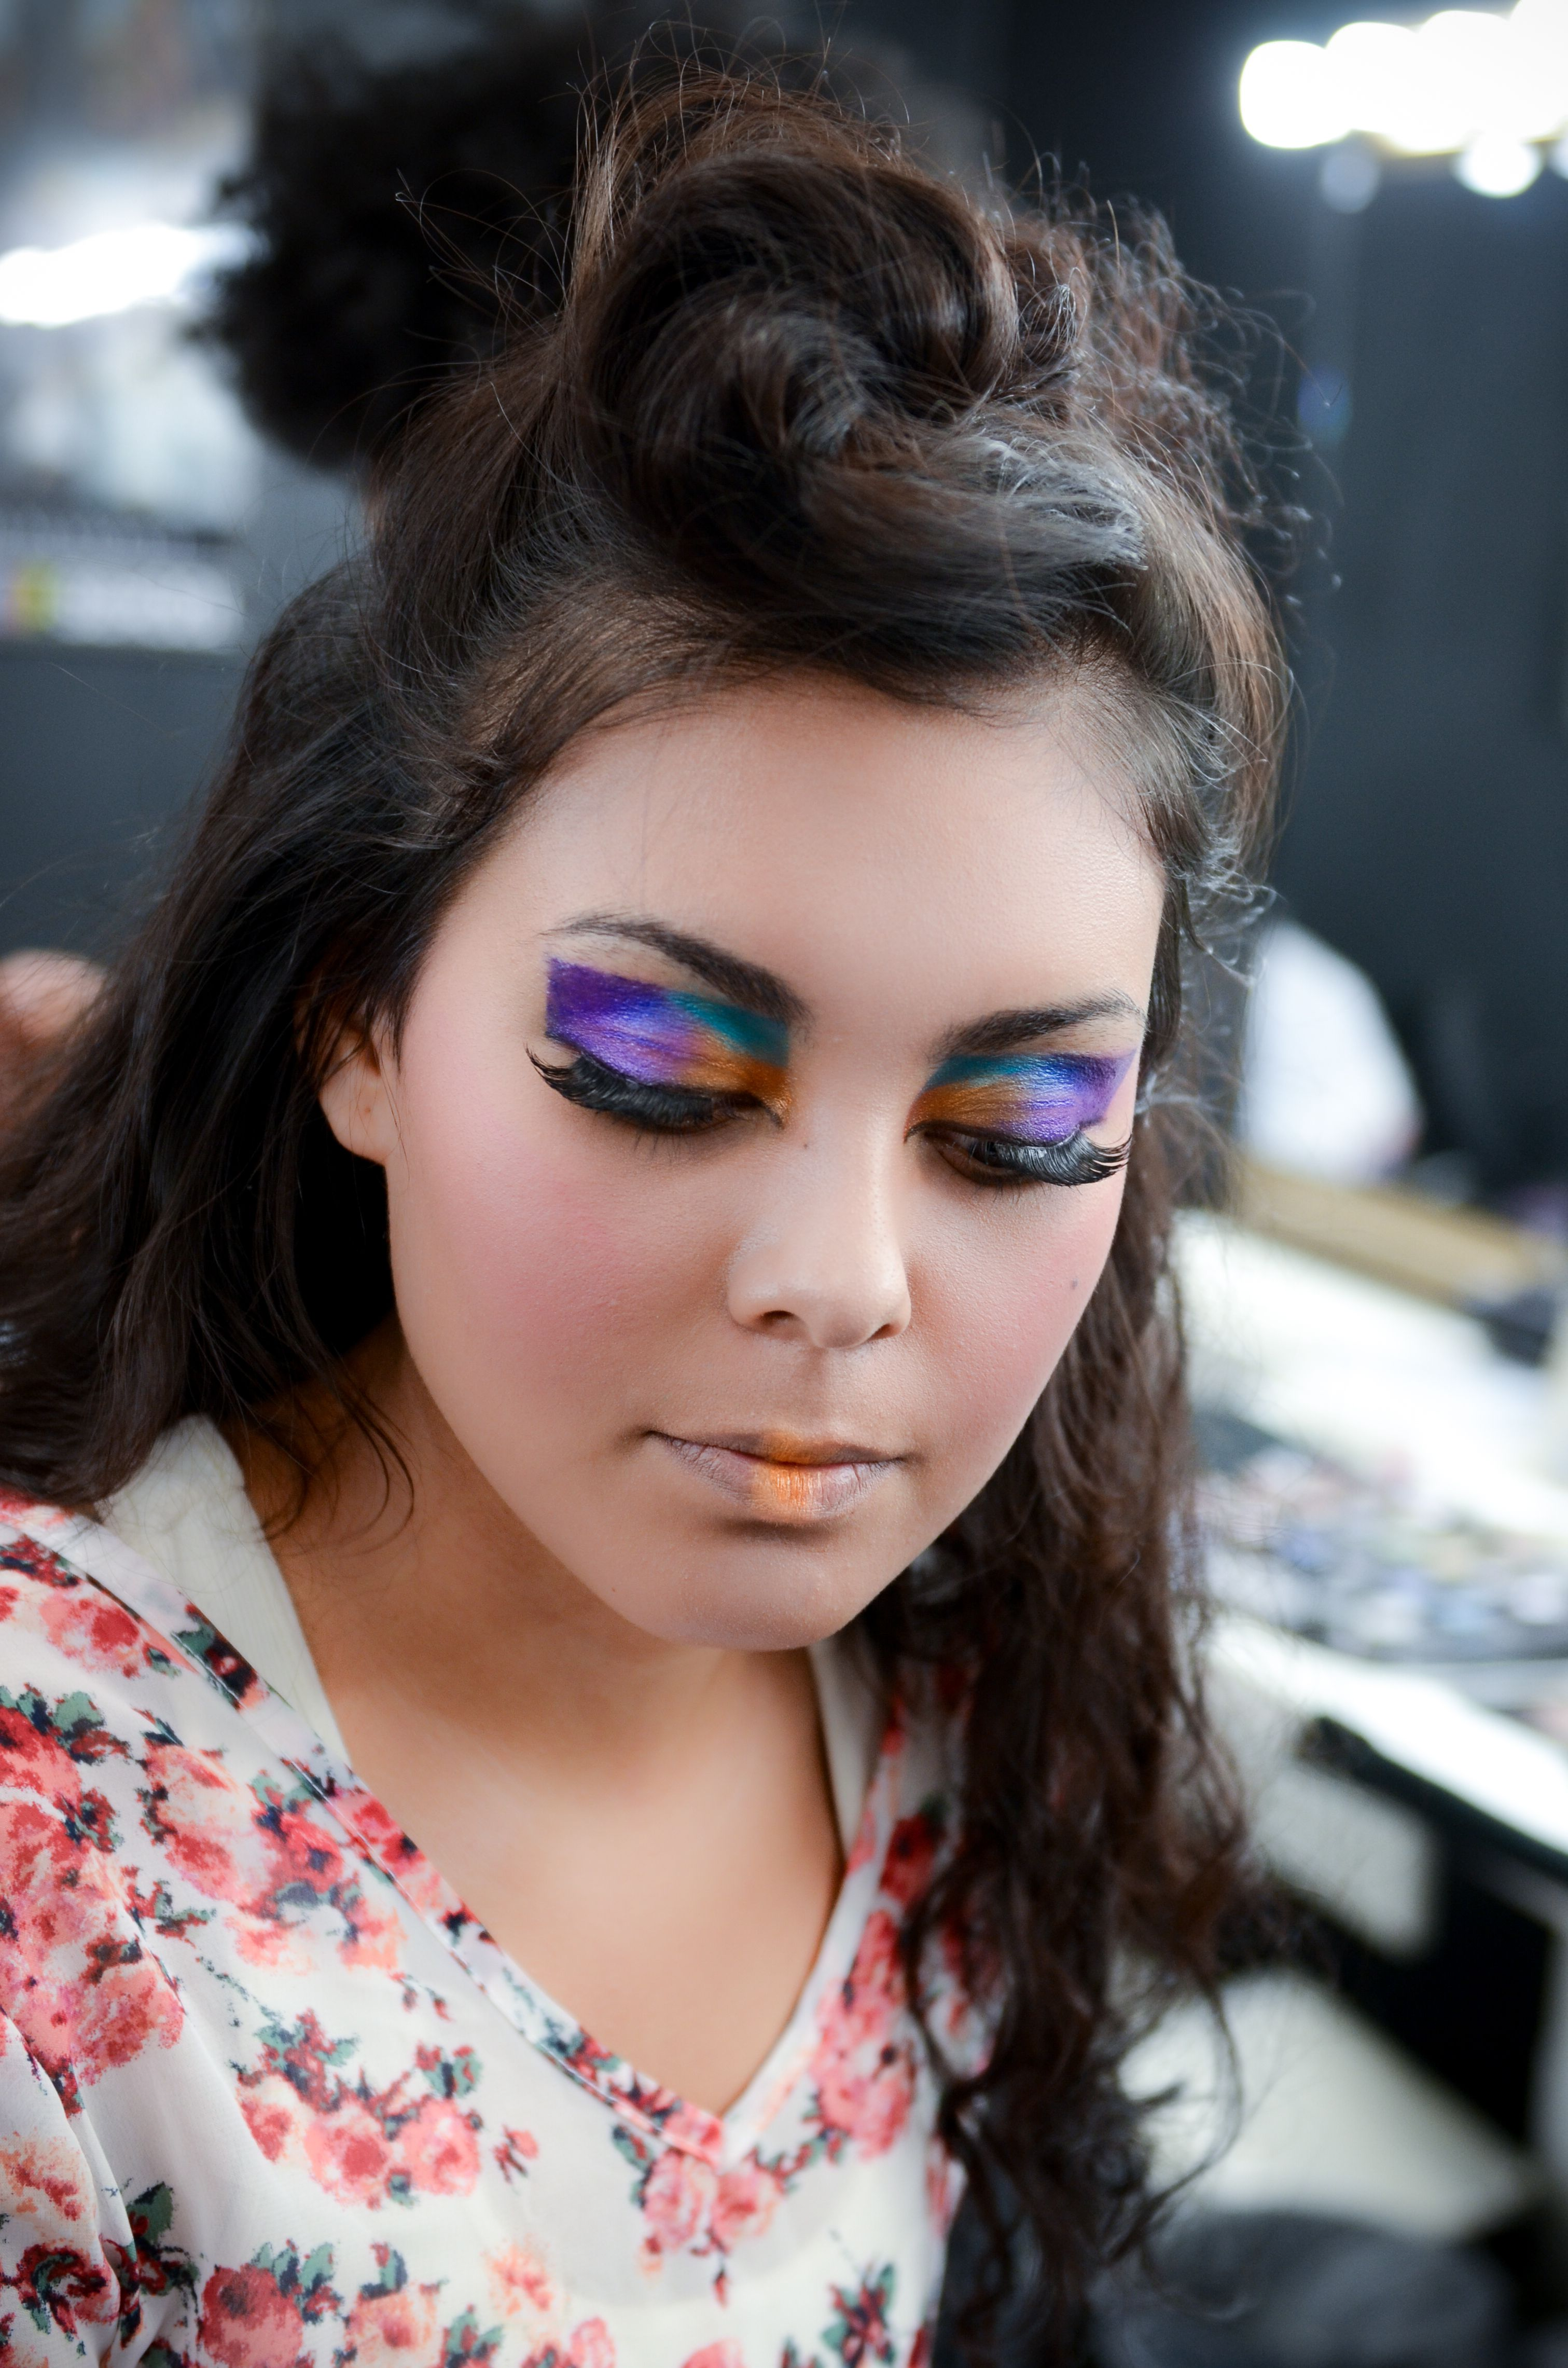 Beauty Bridal And Glamour Makeup Classes At Cmc Makeup School Learn About Foundation Highlight And Contour Focus School Makeup Glamour Makeup Makeup Class